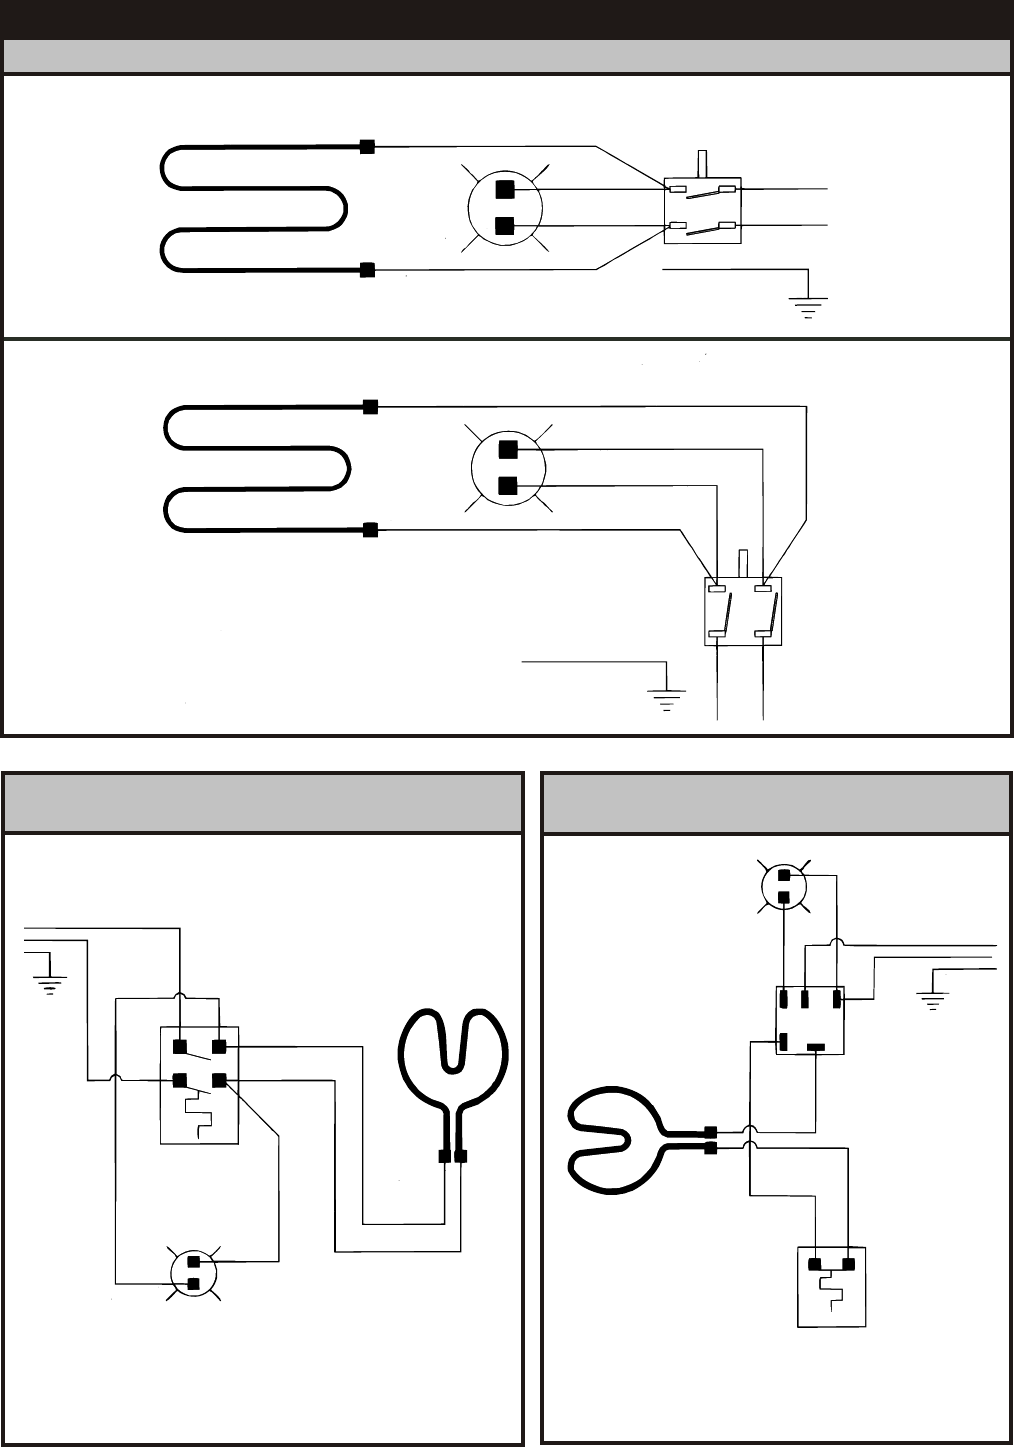 ca7b3e15 4662 41e6 adbd 34fa5e64b3e9 bg8 robertshaw oven thermostat wiring diagram tamahuproject org  at mifinder.co